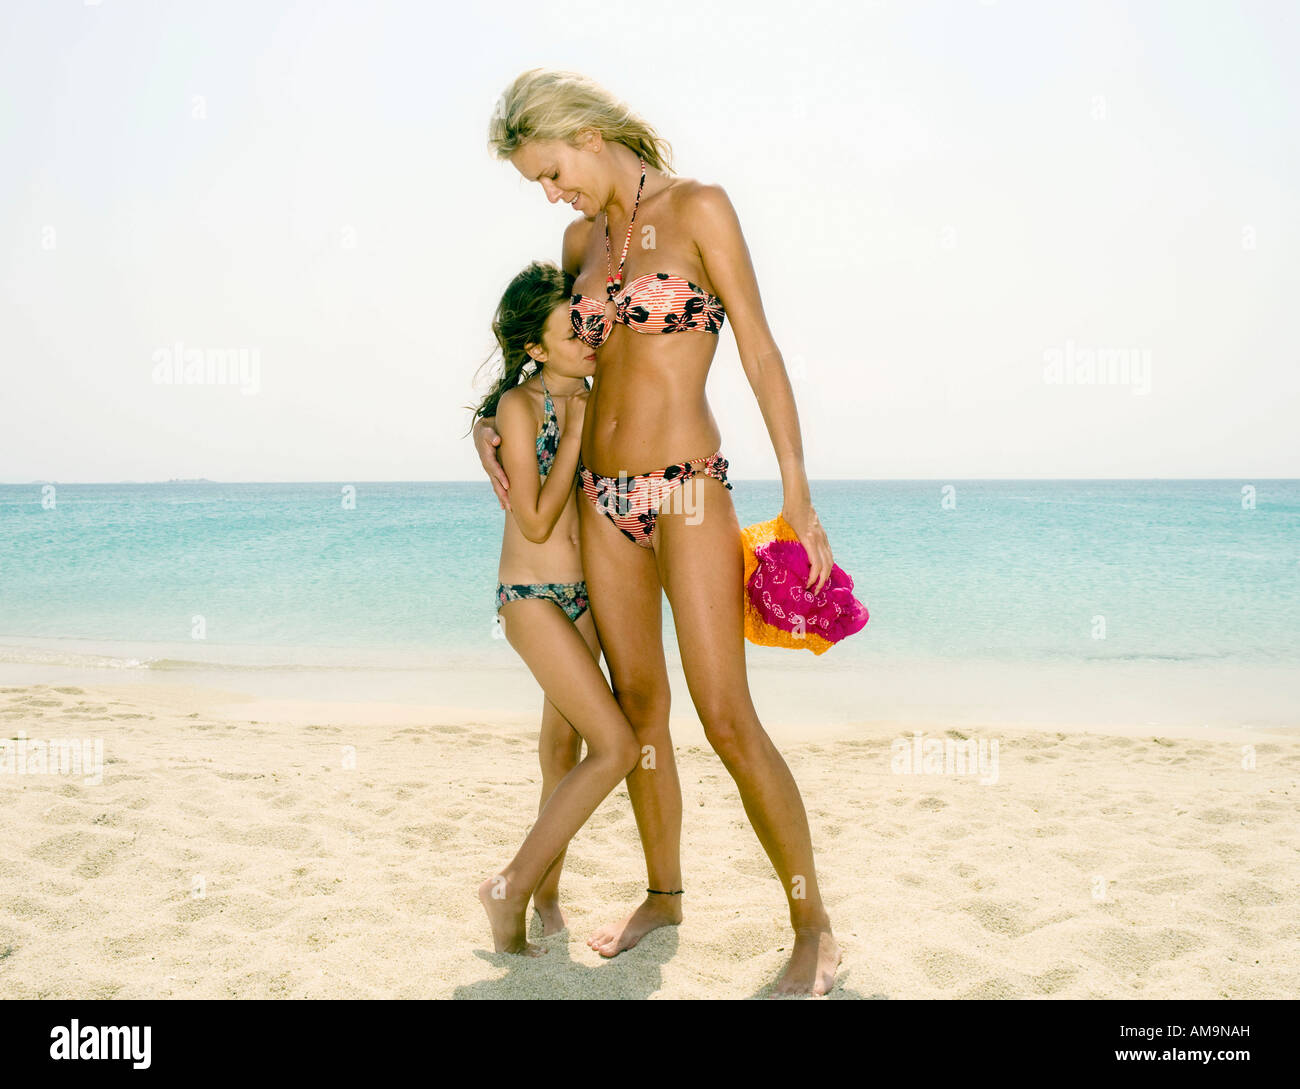 Woman and young girl at the beach smiling. Stock Photo